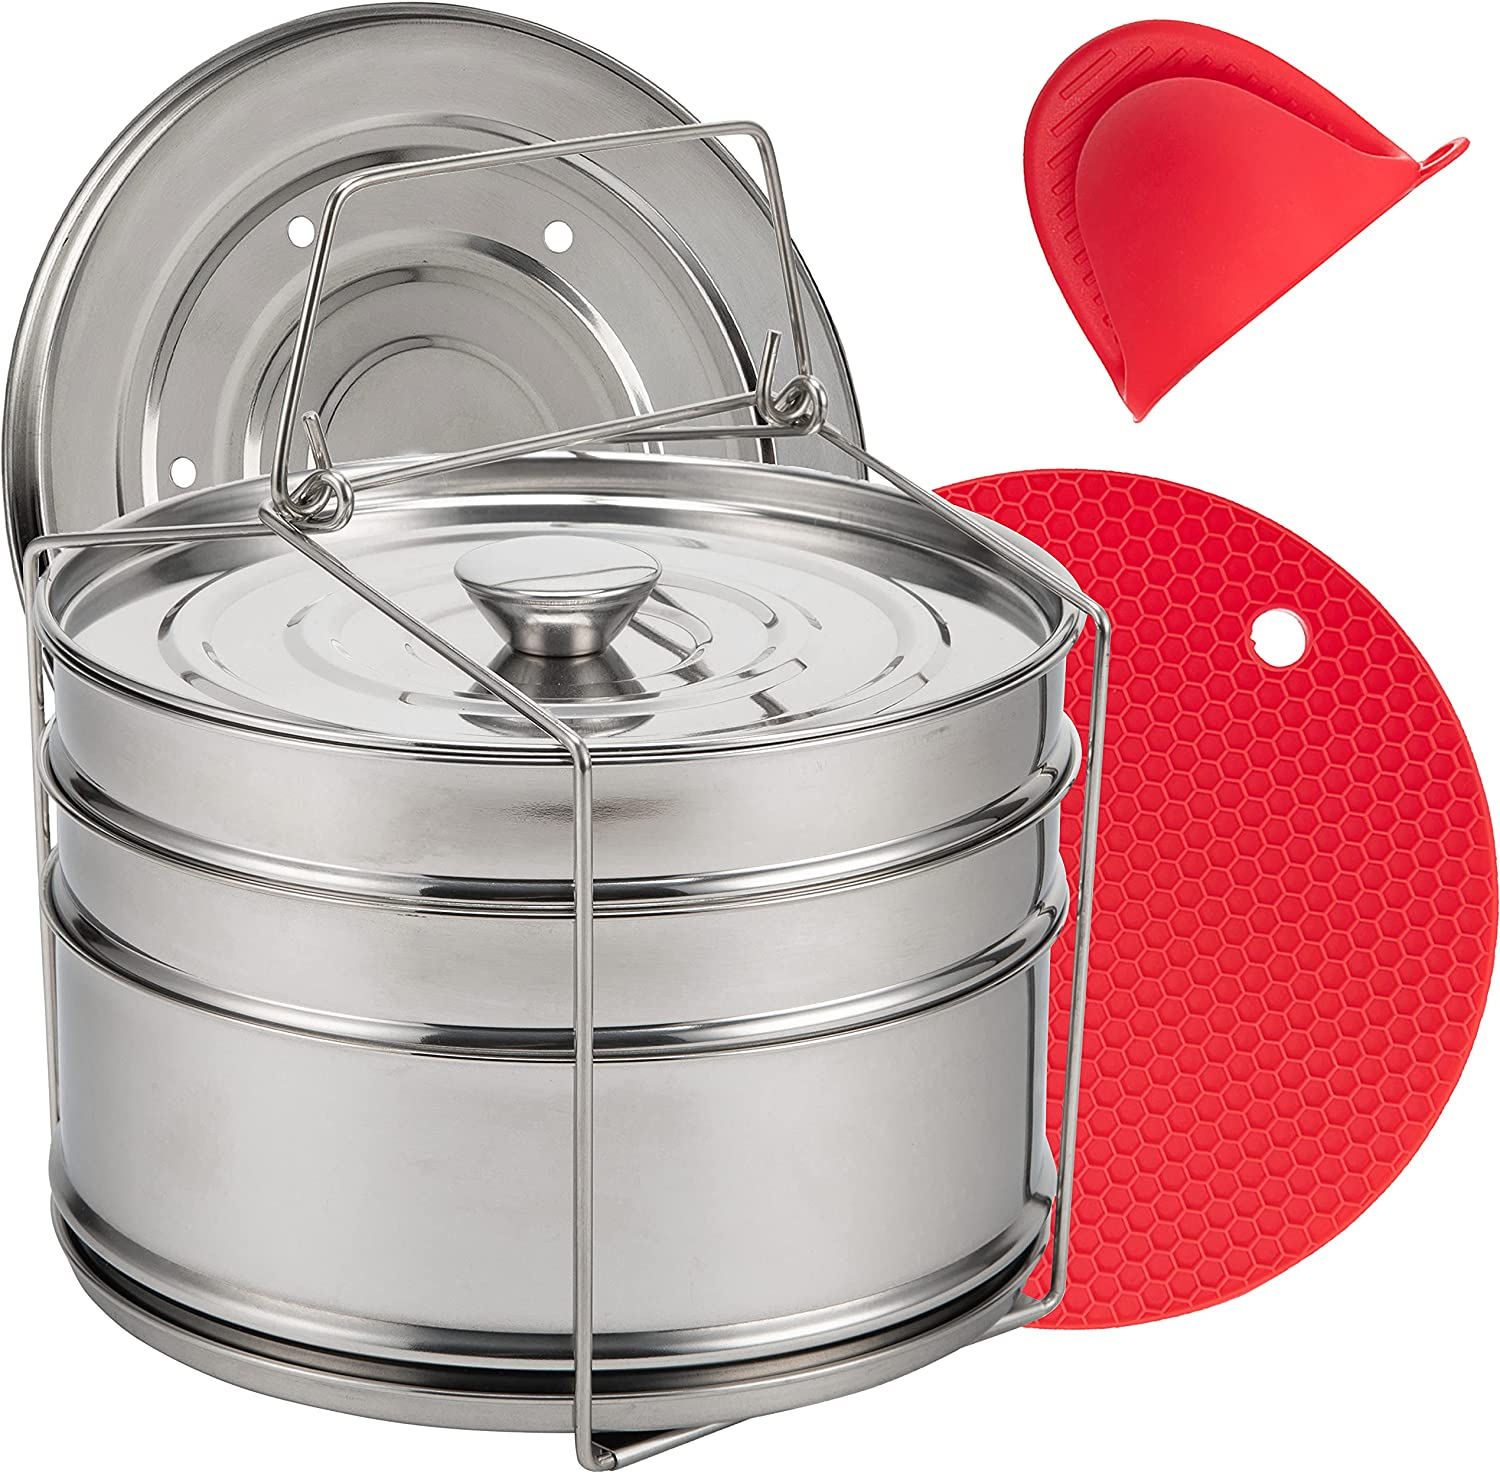 DEGIKO Pressure Cooker Stackable Steamer Insert Pans - 3 Tiers to Cook 3 Dishes at the Same Time - 304 Stainless Steel - 2 Different Lids - Comes With 1 Silicone Glove and 1 Silicone Trivet